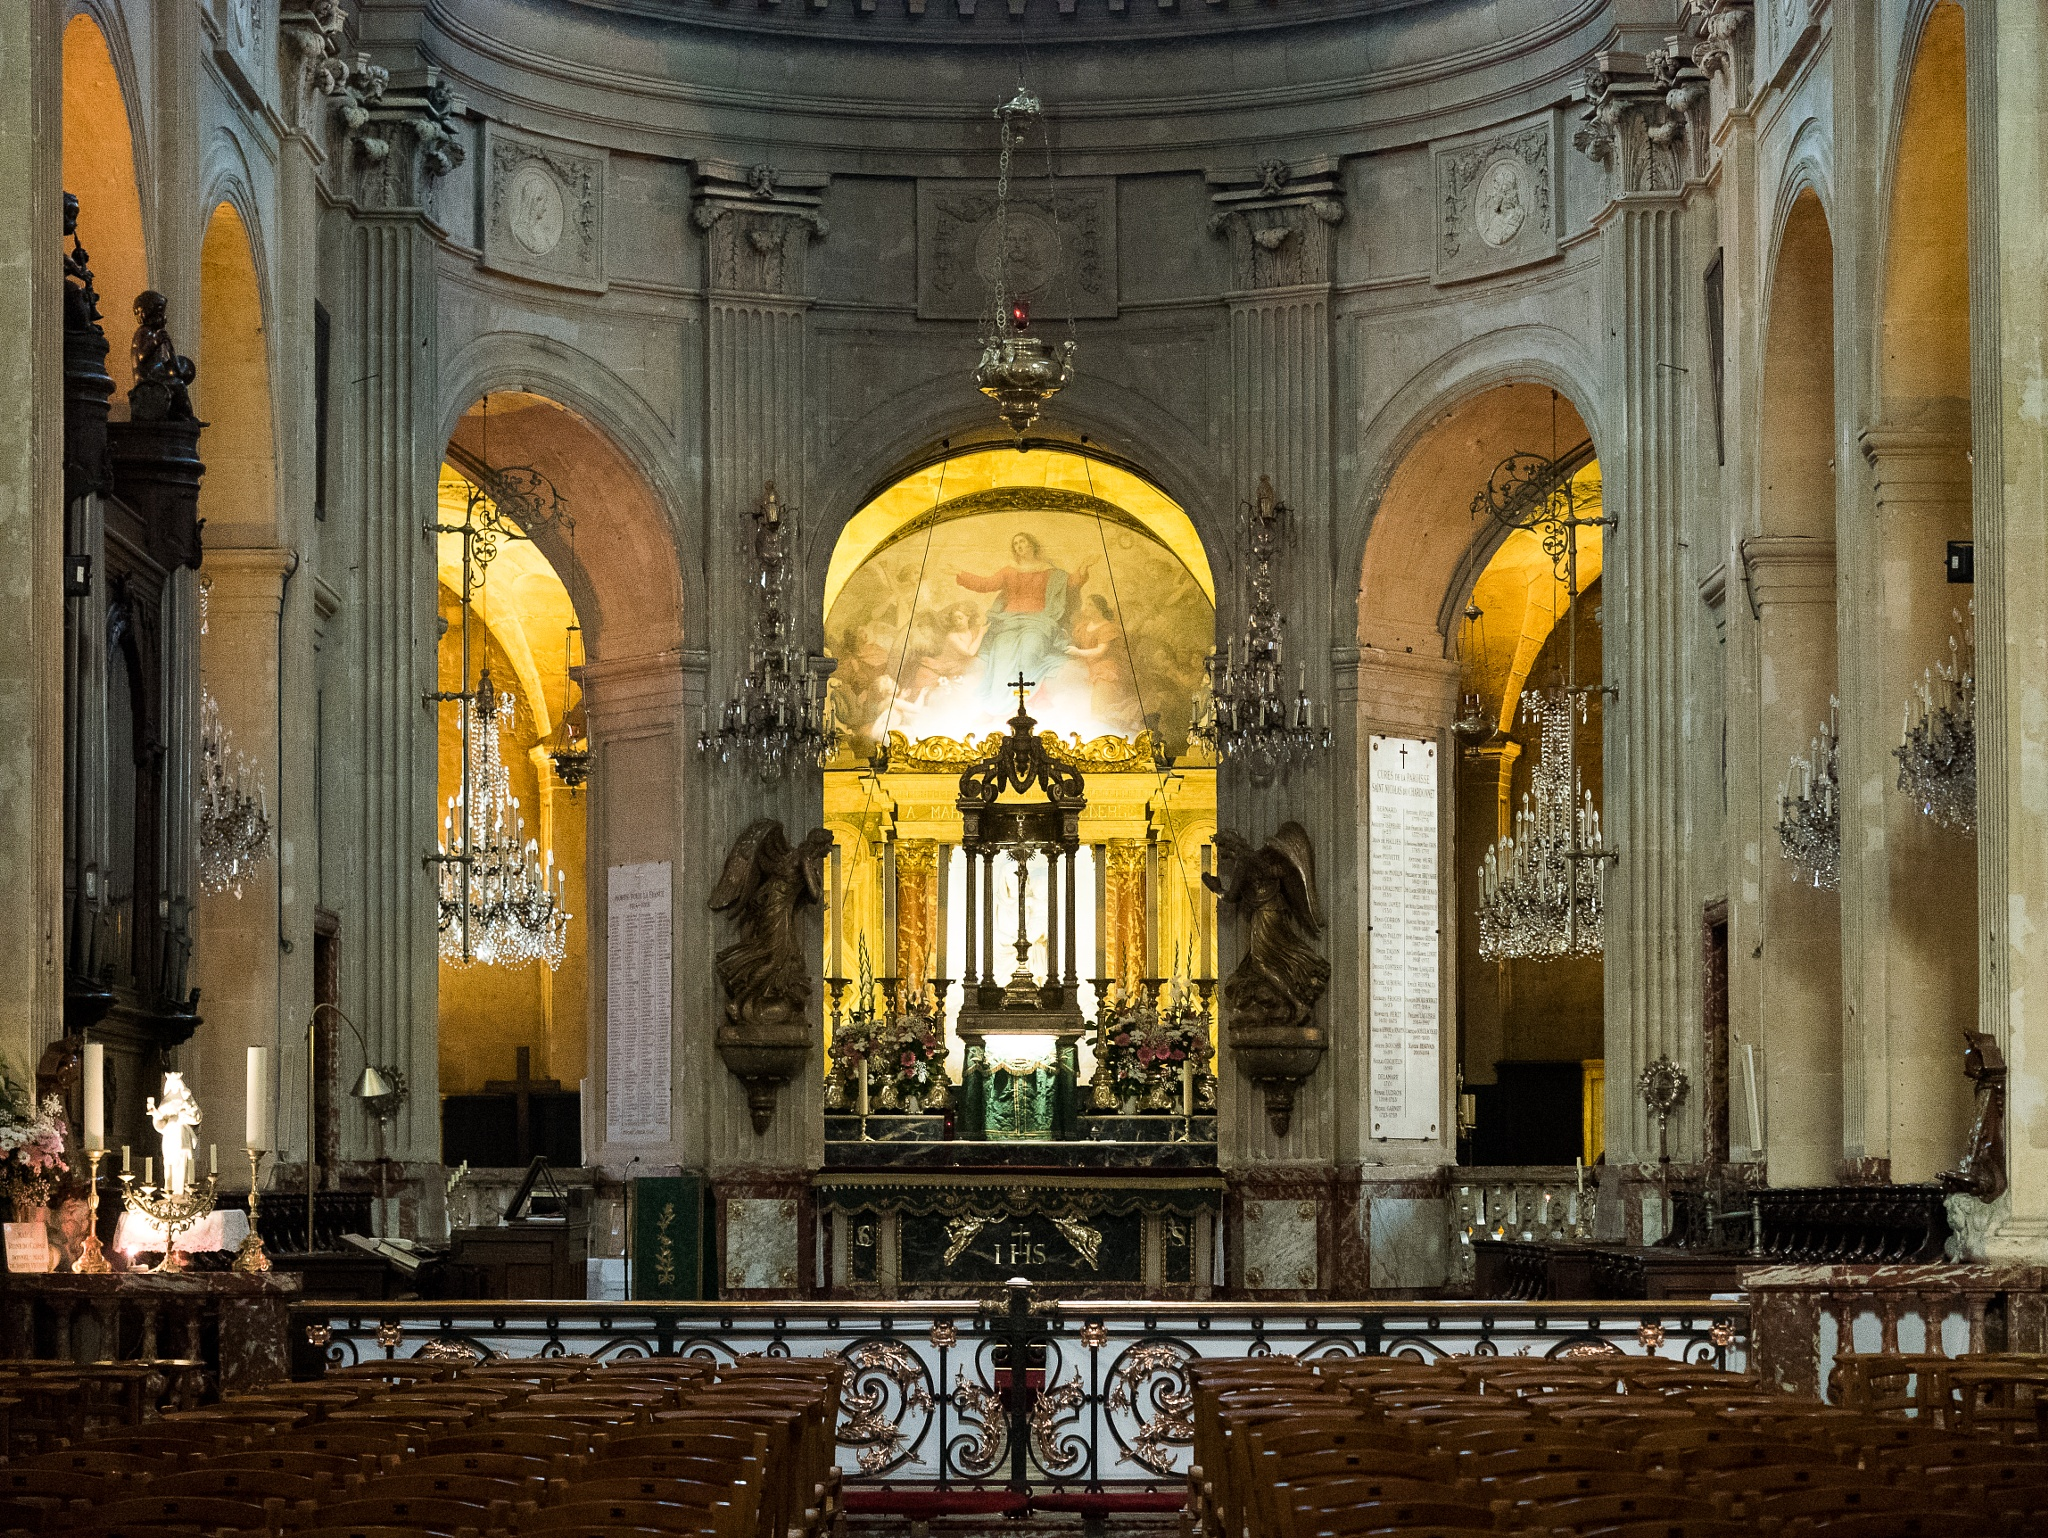 Saint-Nicolas du Chardonnet church, Paris by Martine de Lajudie